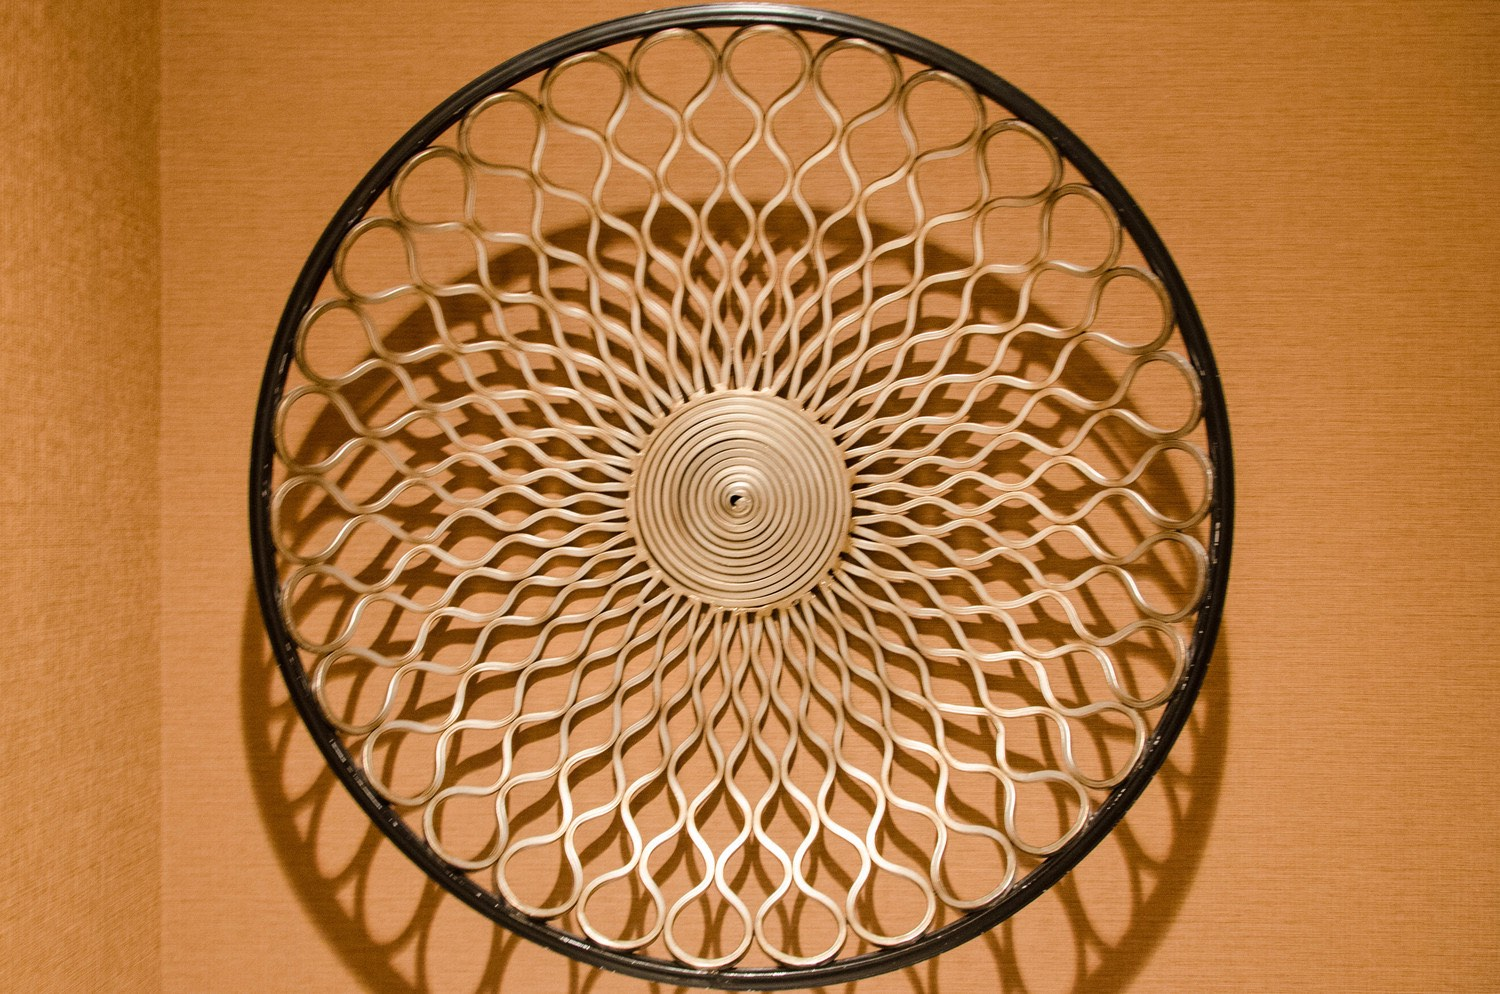 Metal woven bowl used as wall art